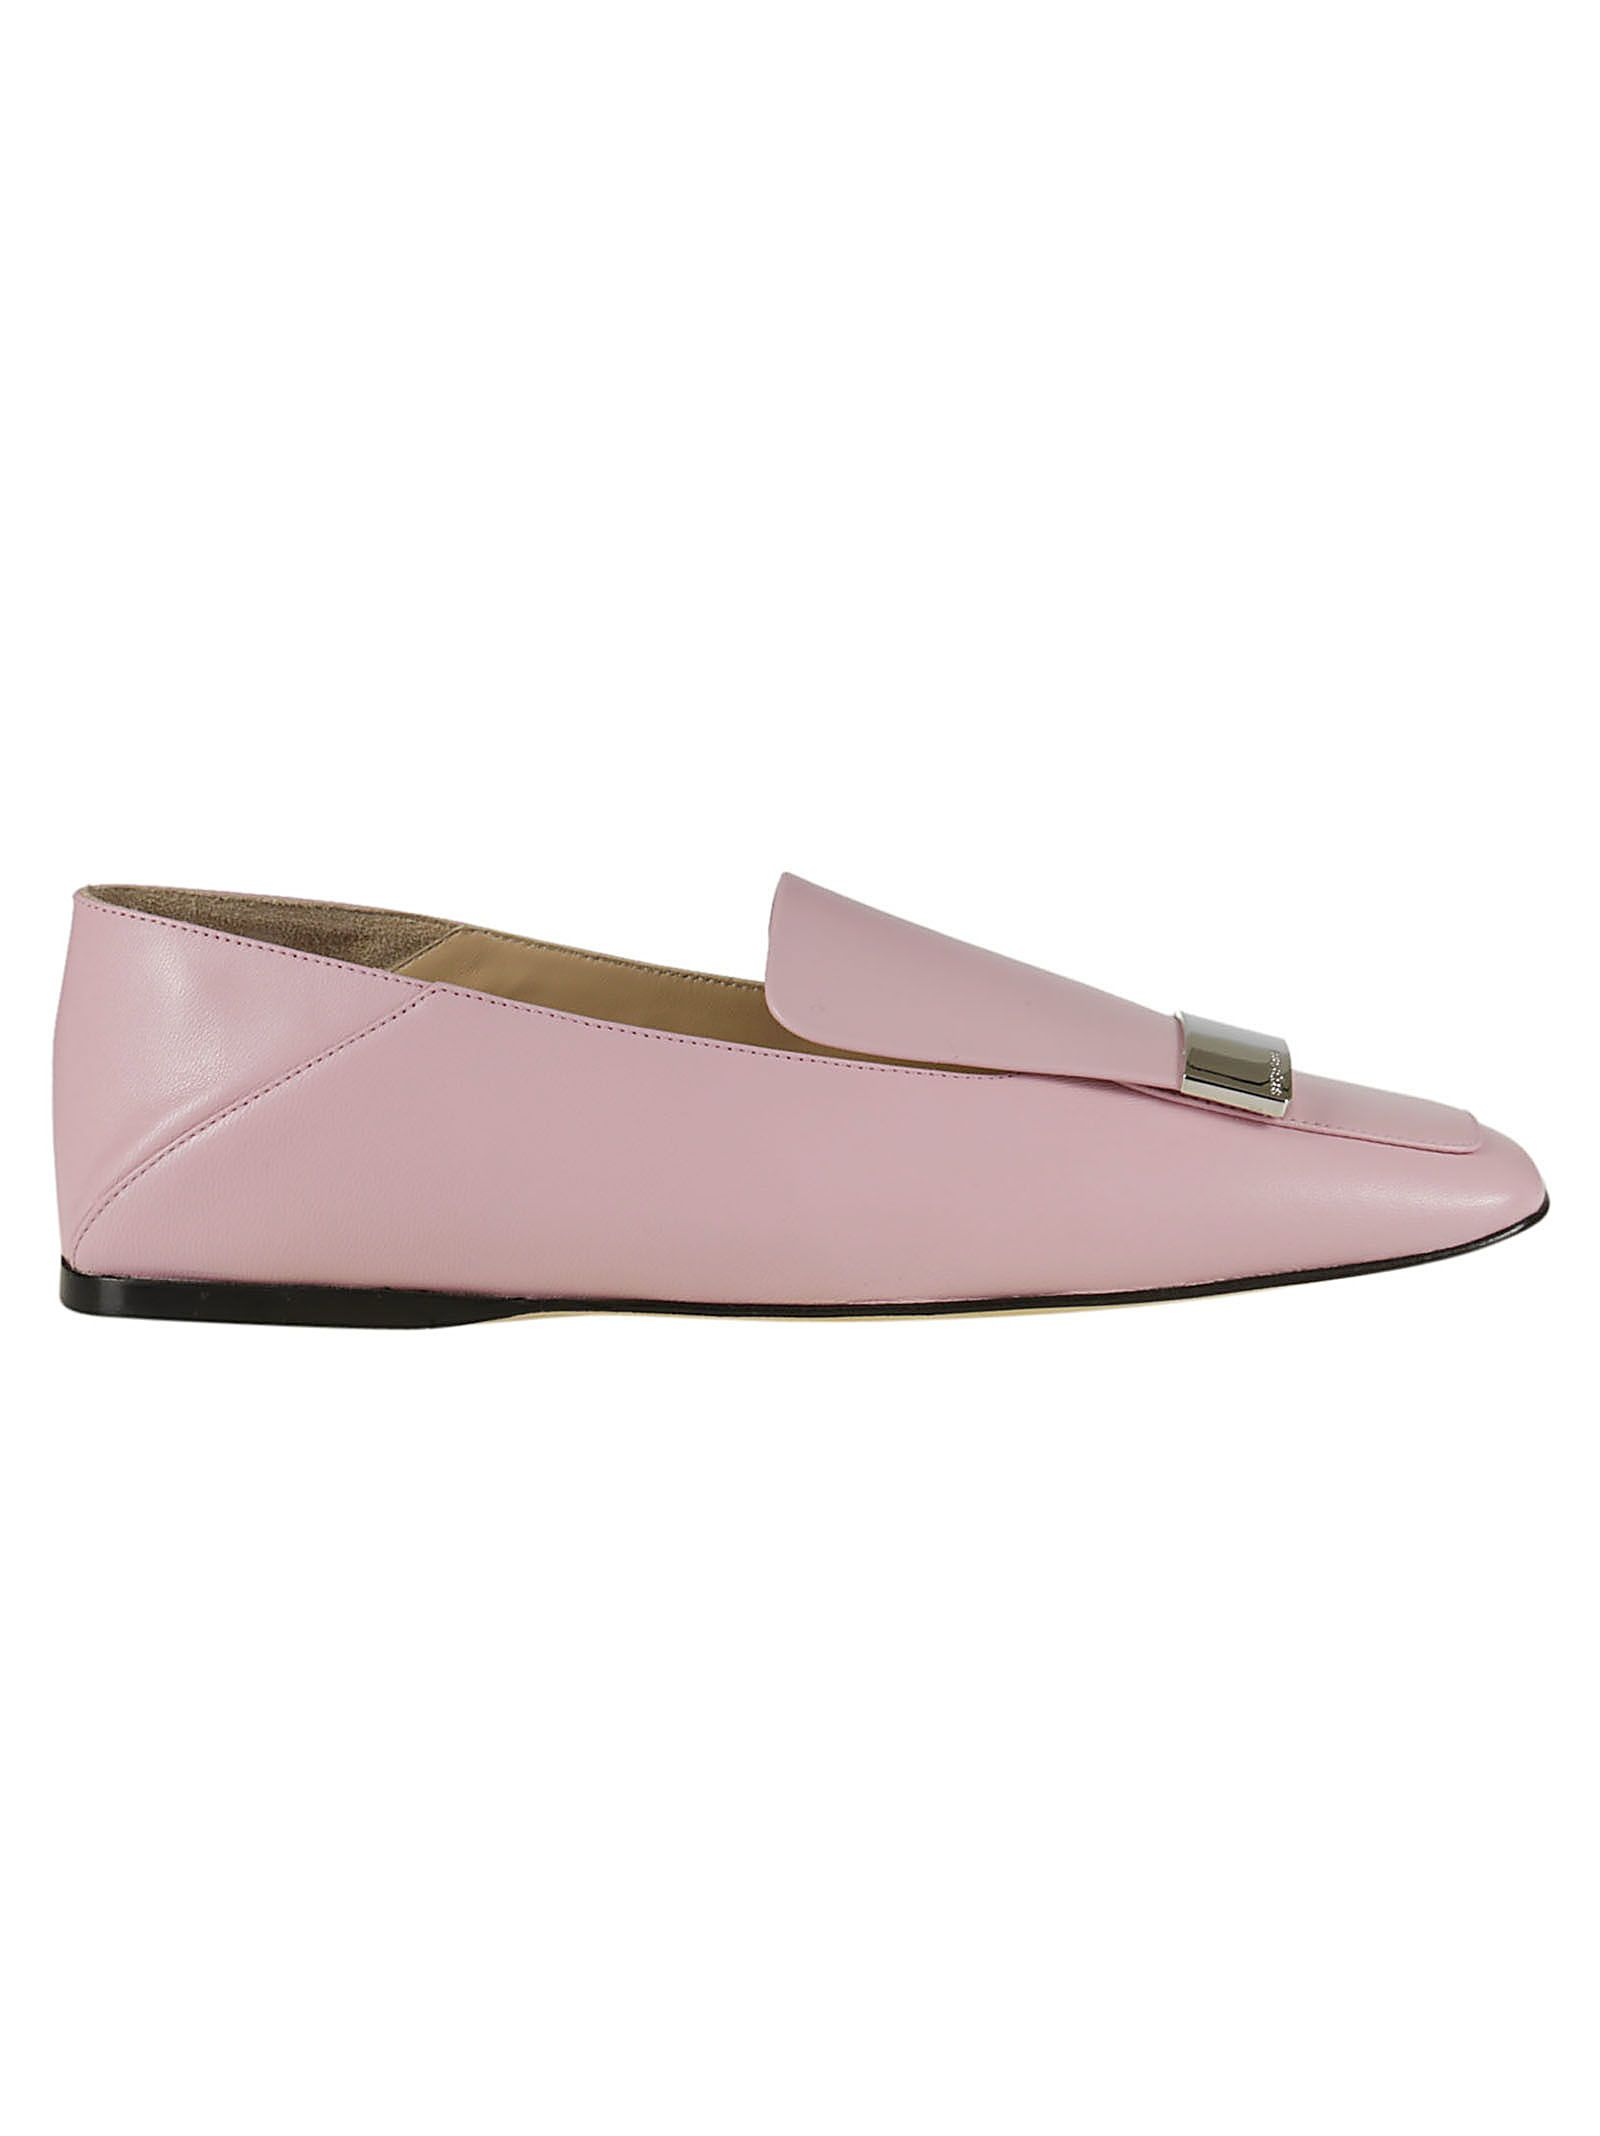 Get Authentic For Sale Pictures Sale Online square toe loafers - Pink & Purple Sergio Rossi B5qnDjfW